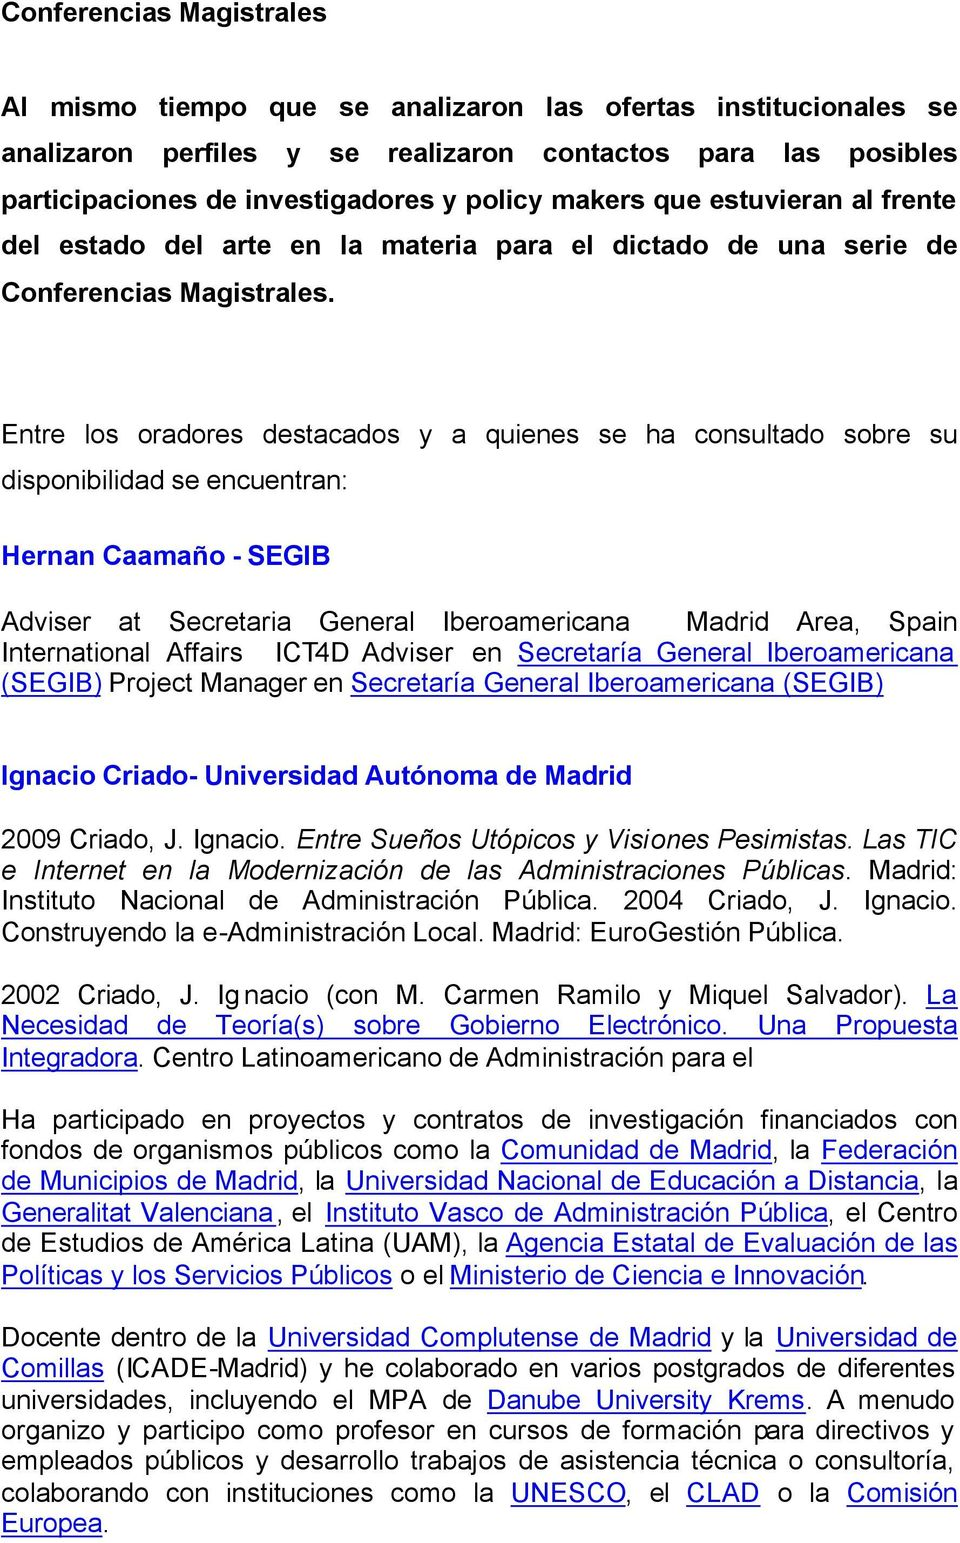 Entre los oradores destacados y a quienes se ha consultado sobre su disponibilidad se encuentran: Hernan Caamaño - SEGIB Adviser at Secretaria General Iberoamericana Madrid Area, Spain International